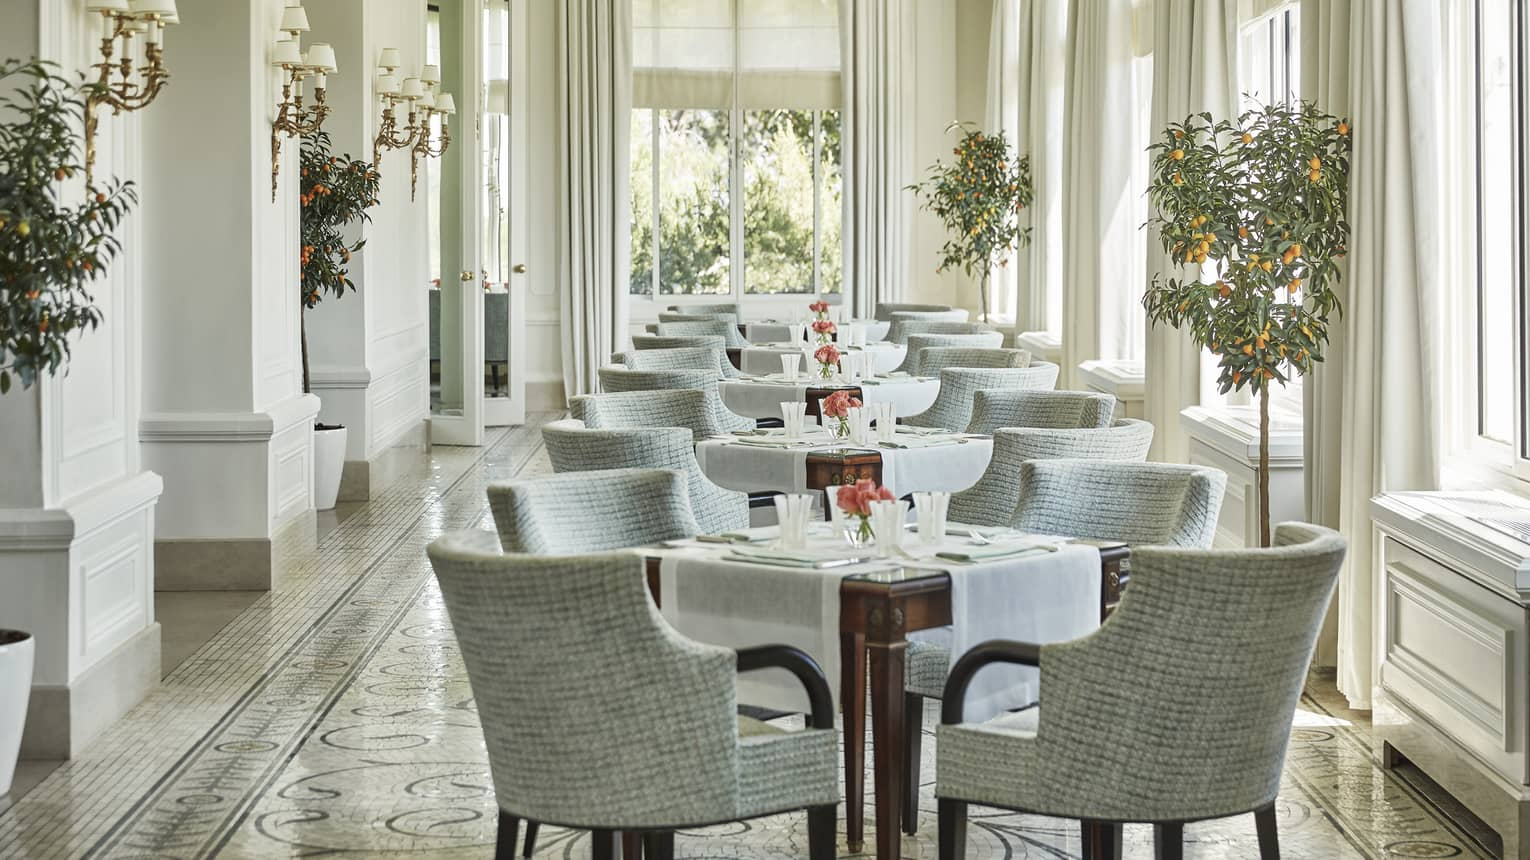 Grey chairs around tables in sunny Le Veranda dining room